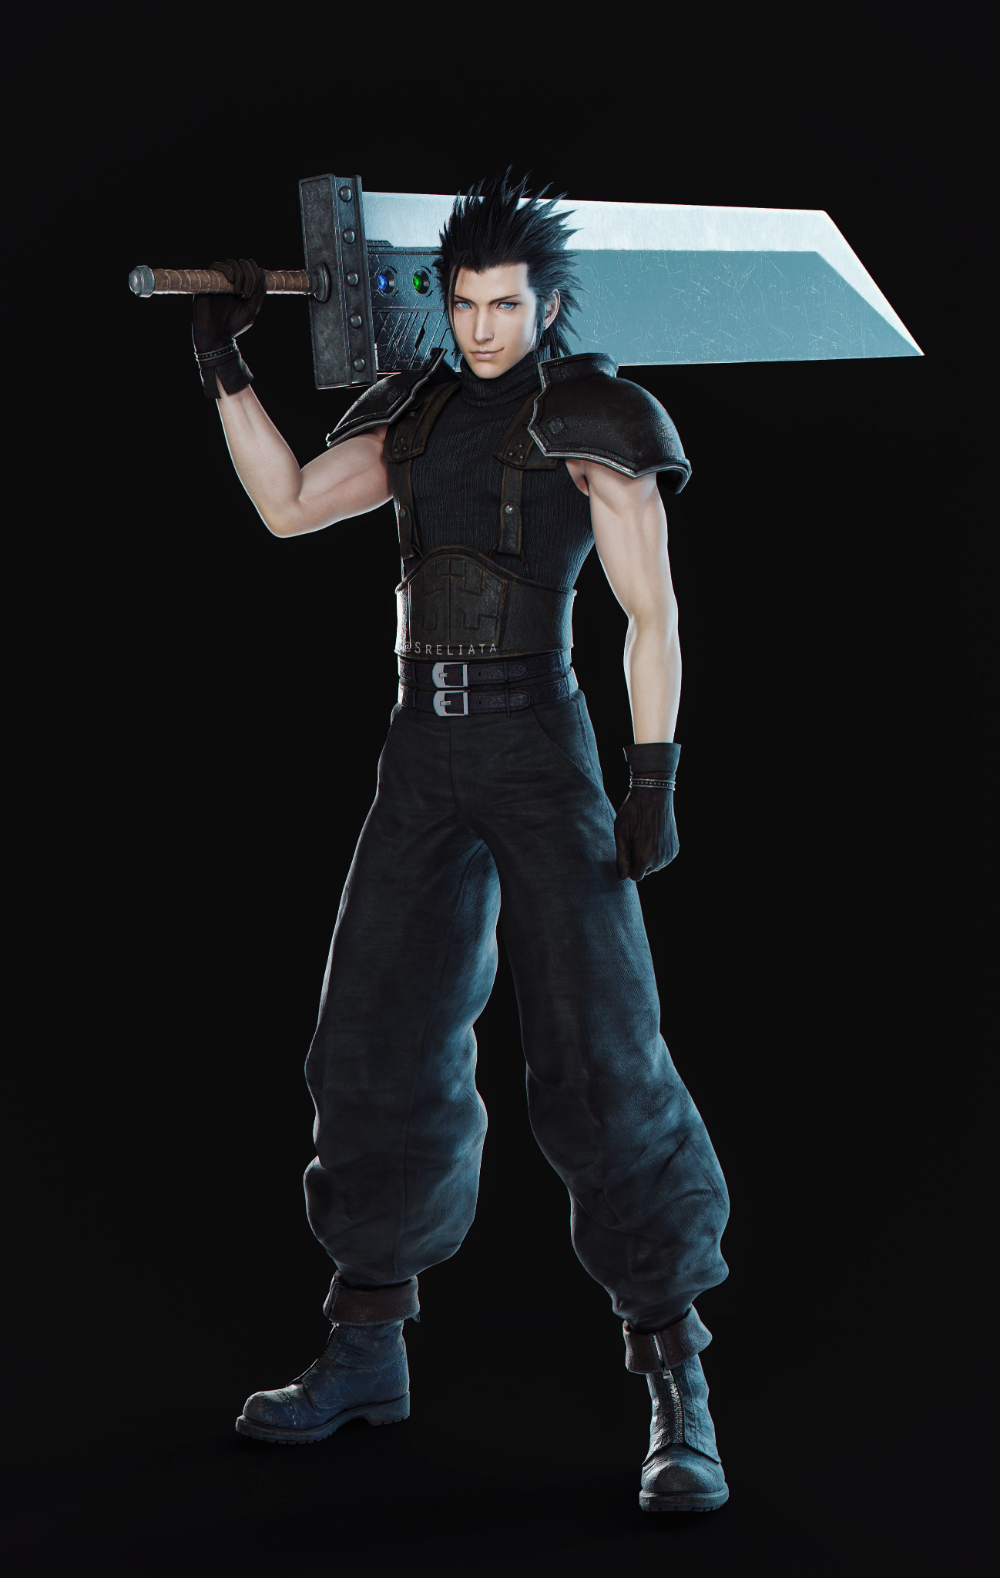 Sʀᴇʟɪᴀᴛᴀ on Twitter in 2020 Zack fair, Final fantasy vii